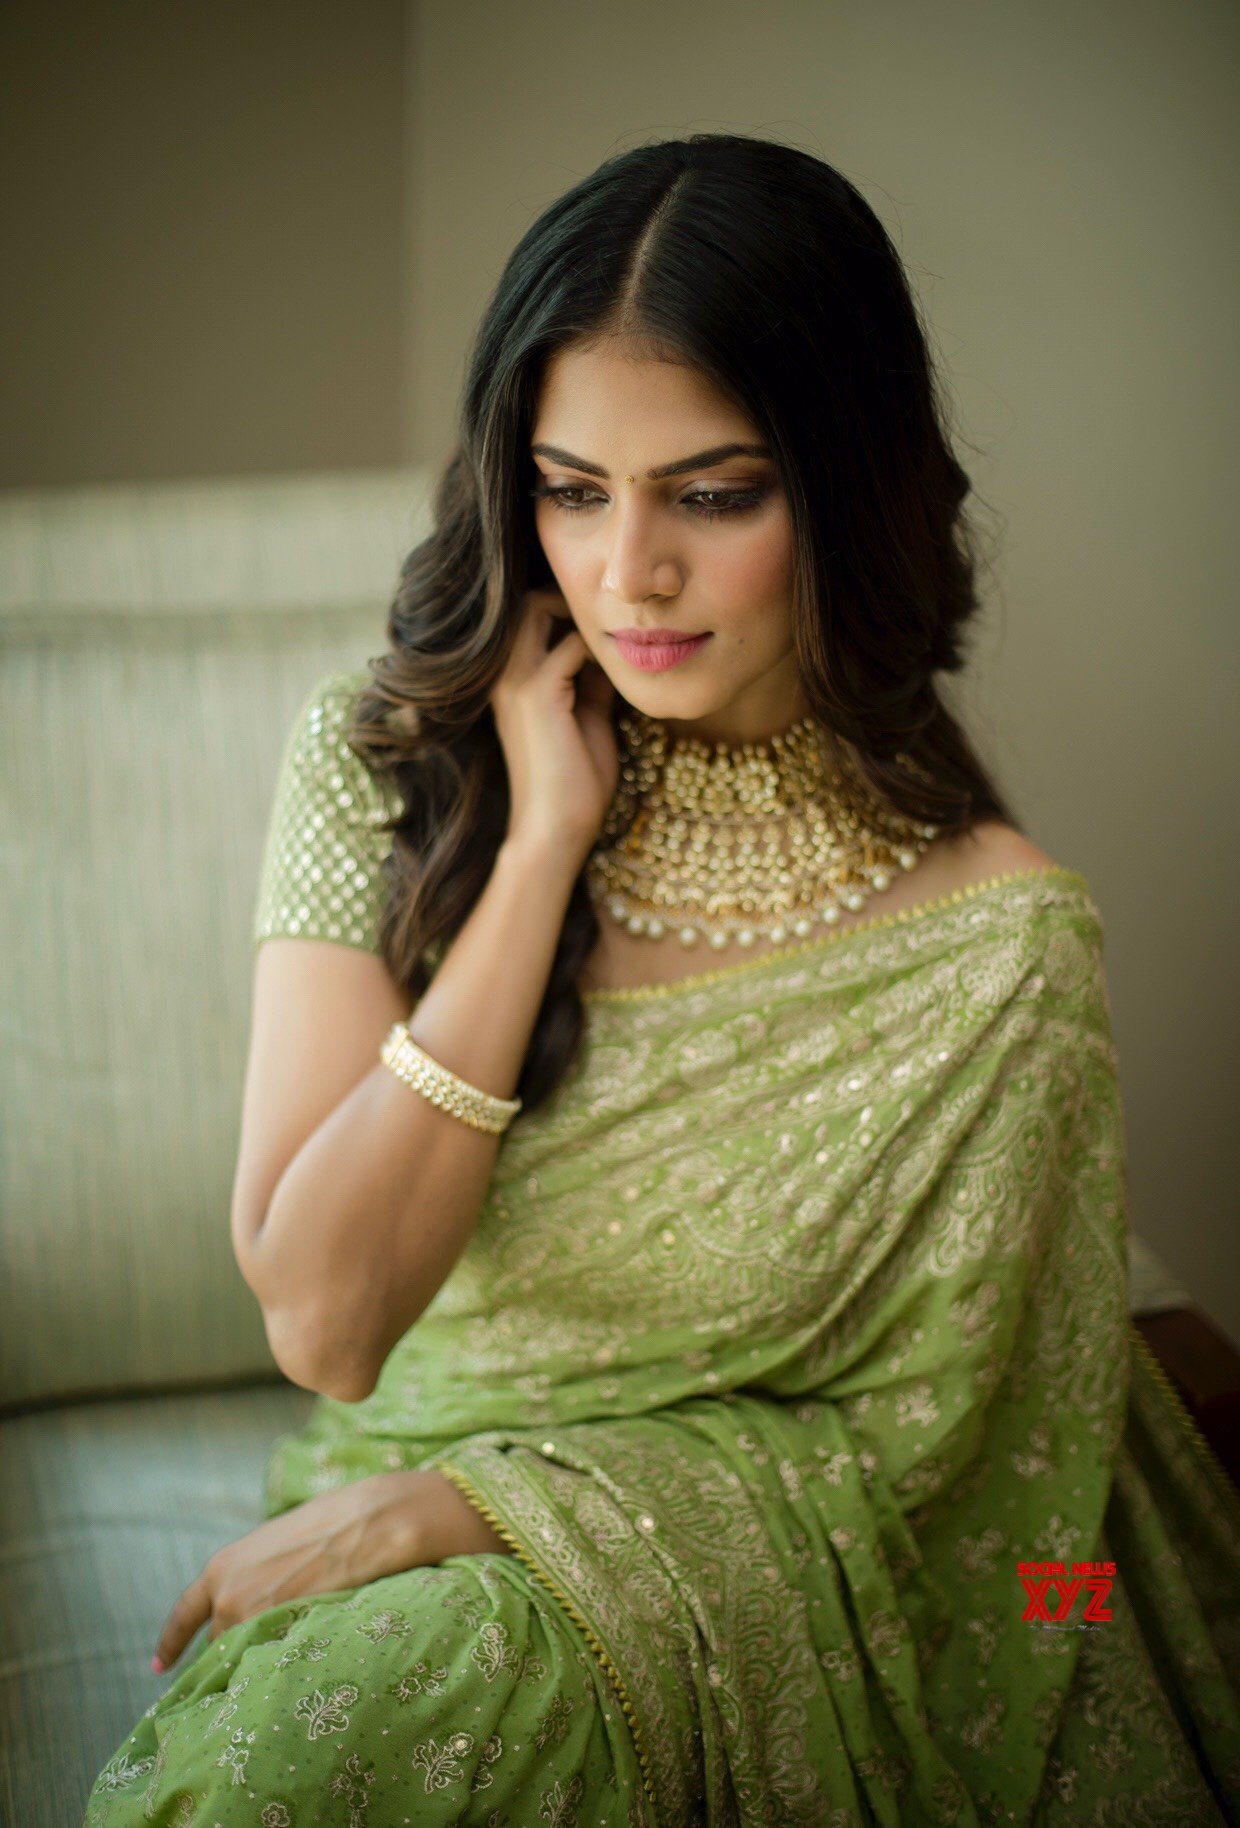 Actress Malavika Mohanan Stunning HD Stills From Thalapathy 64 Movie Pooja